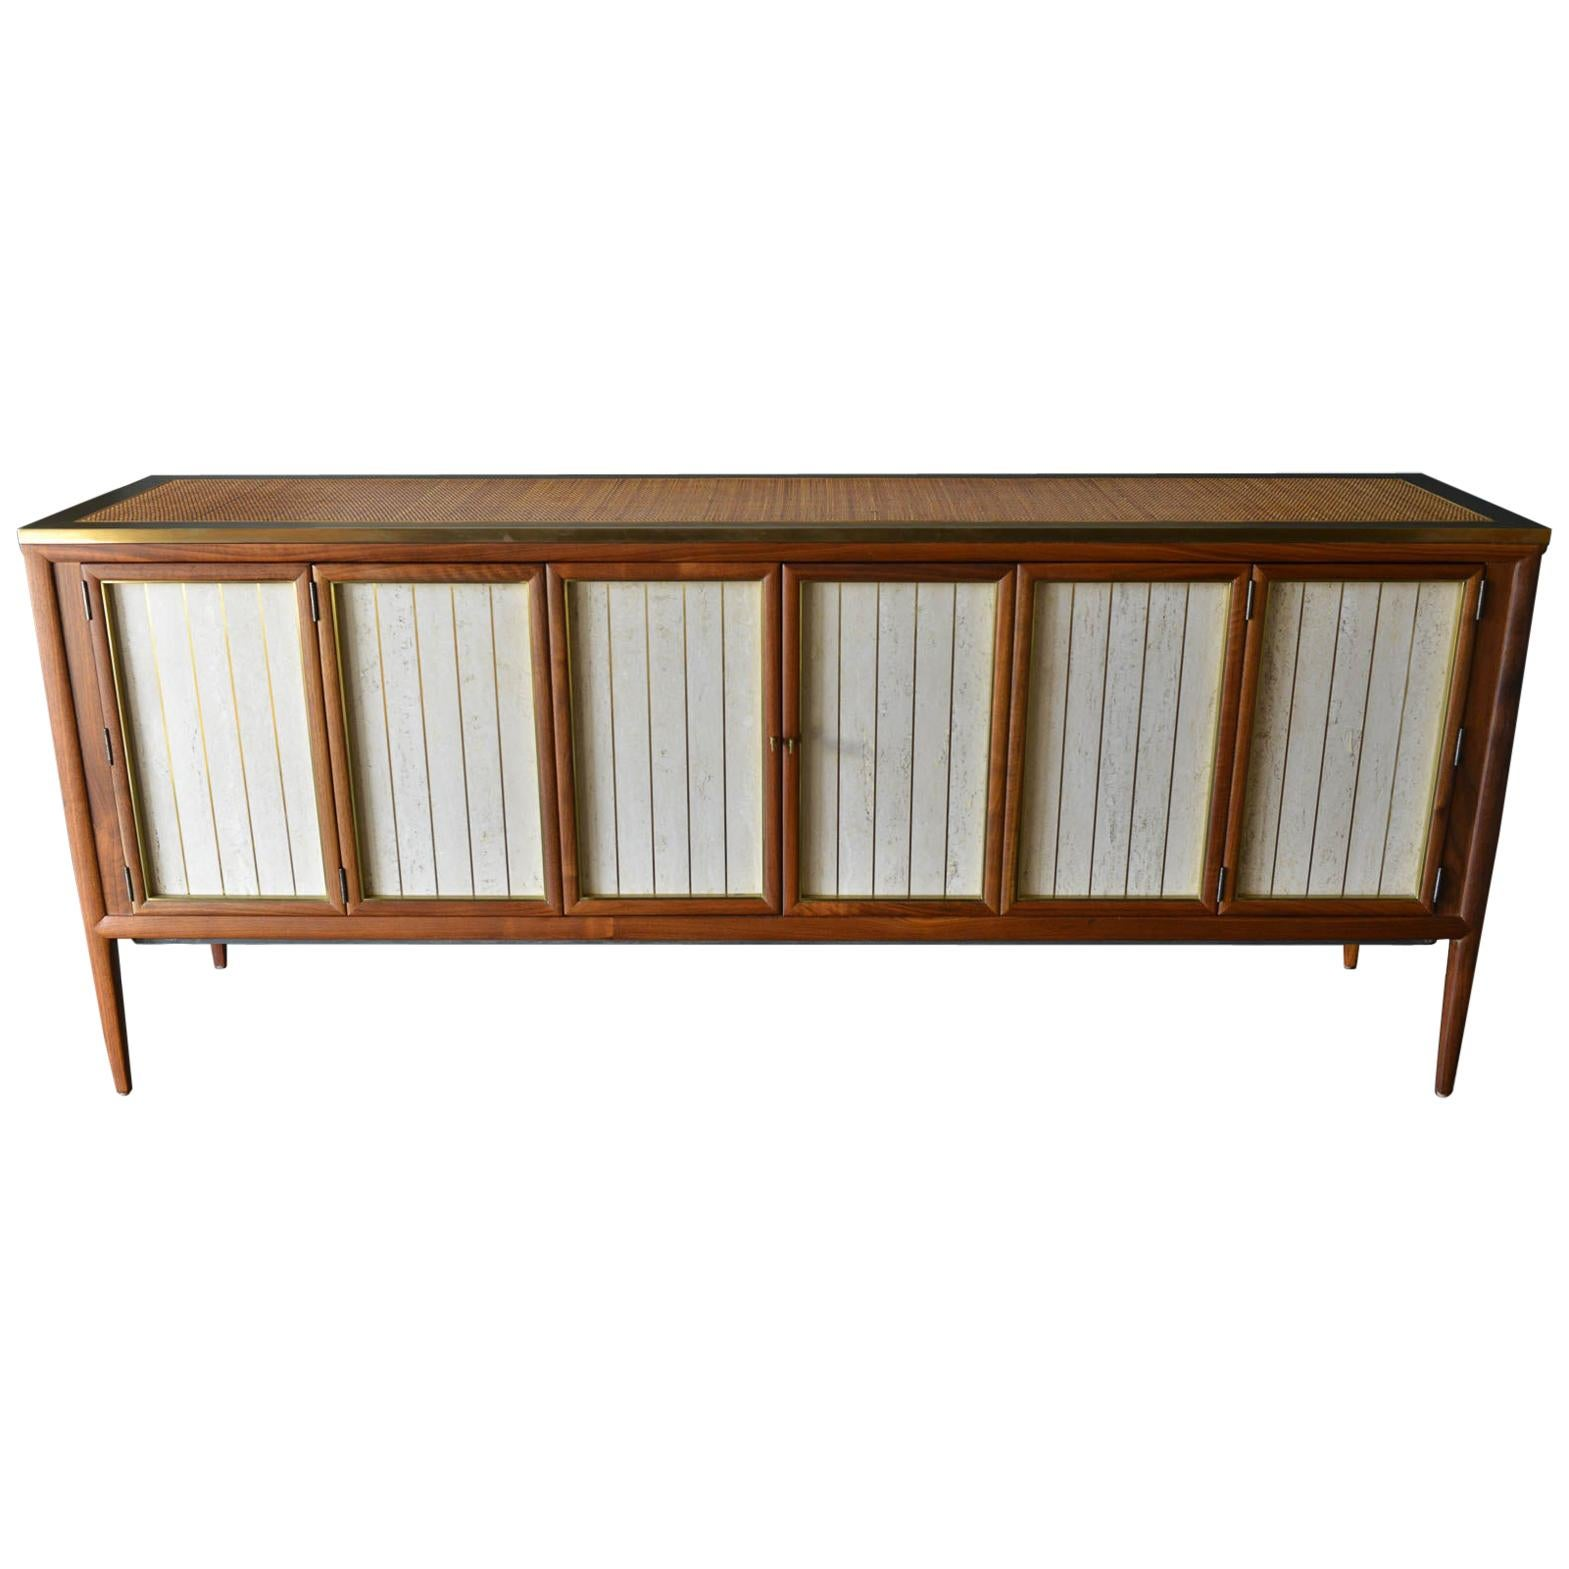 Bert England Walnut, Cane, Brass and Travertine Credenza, circa 1955